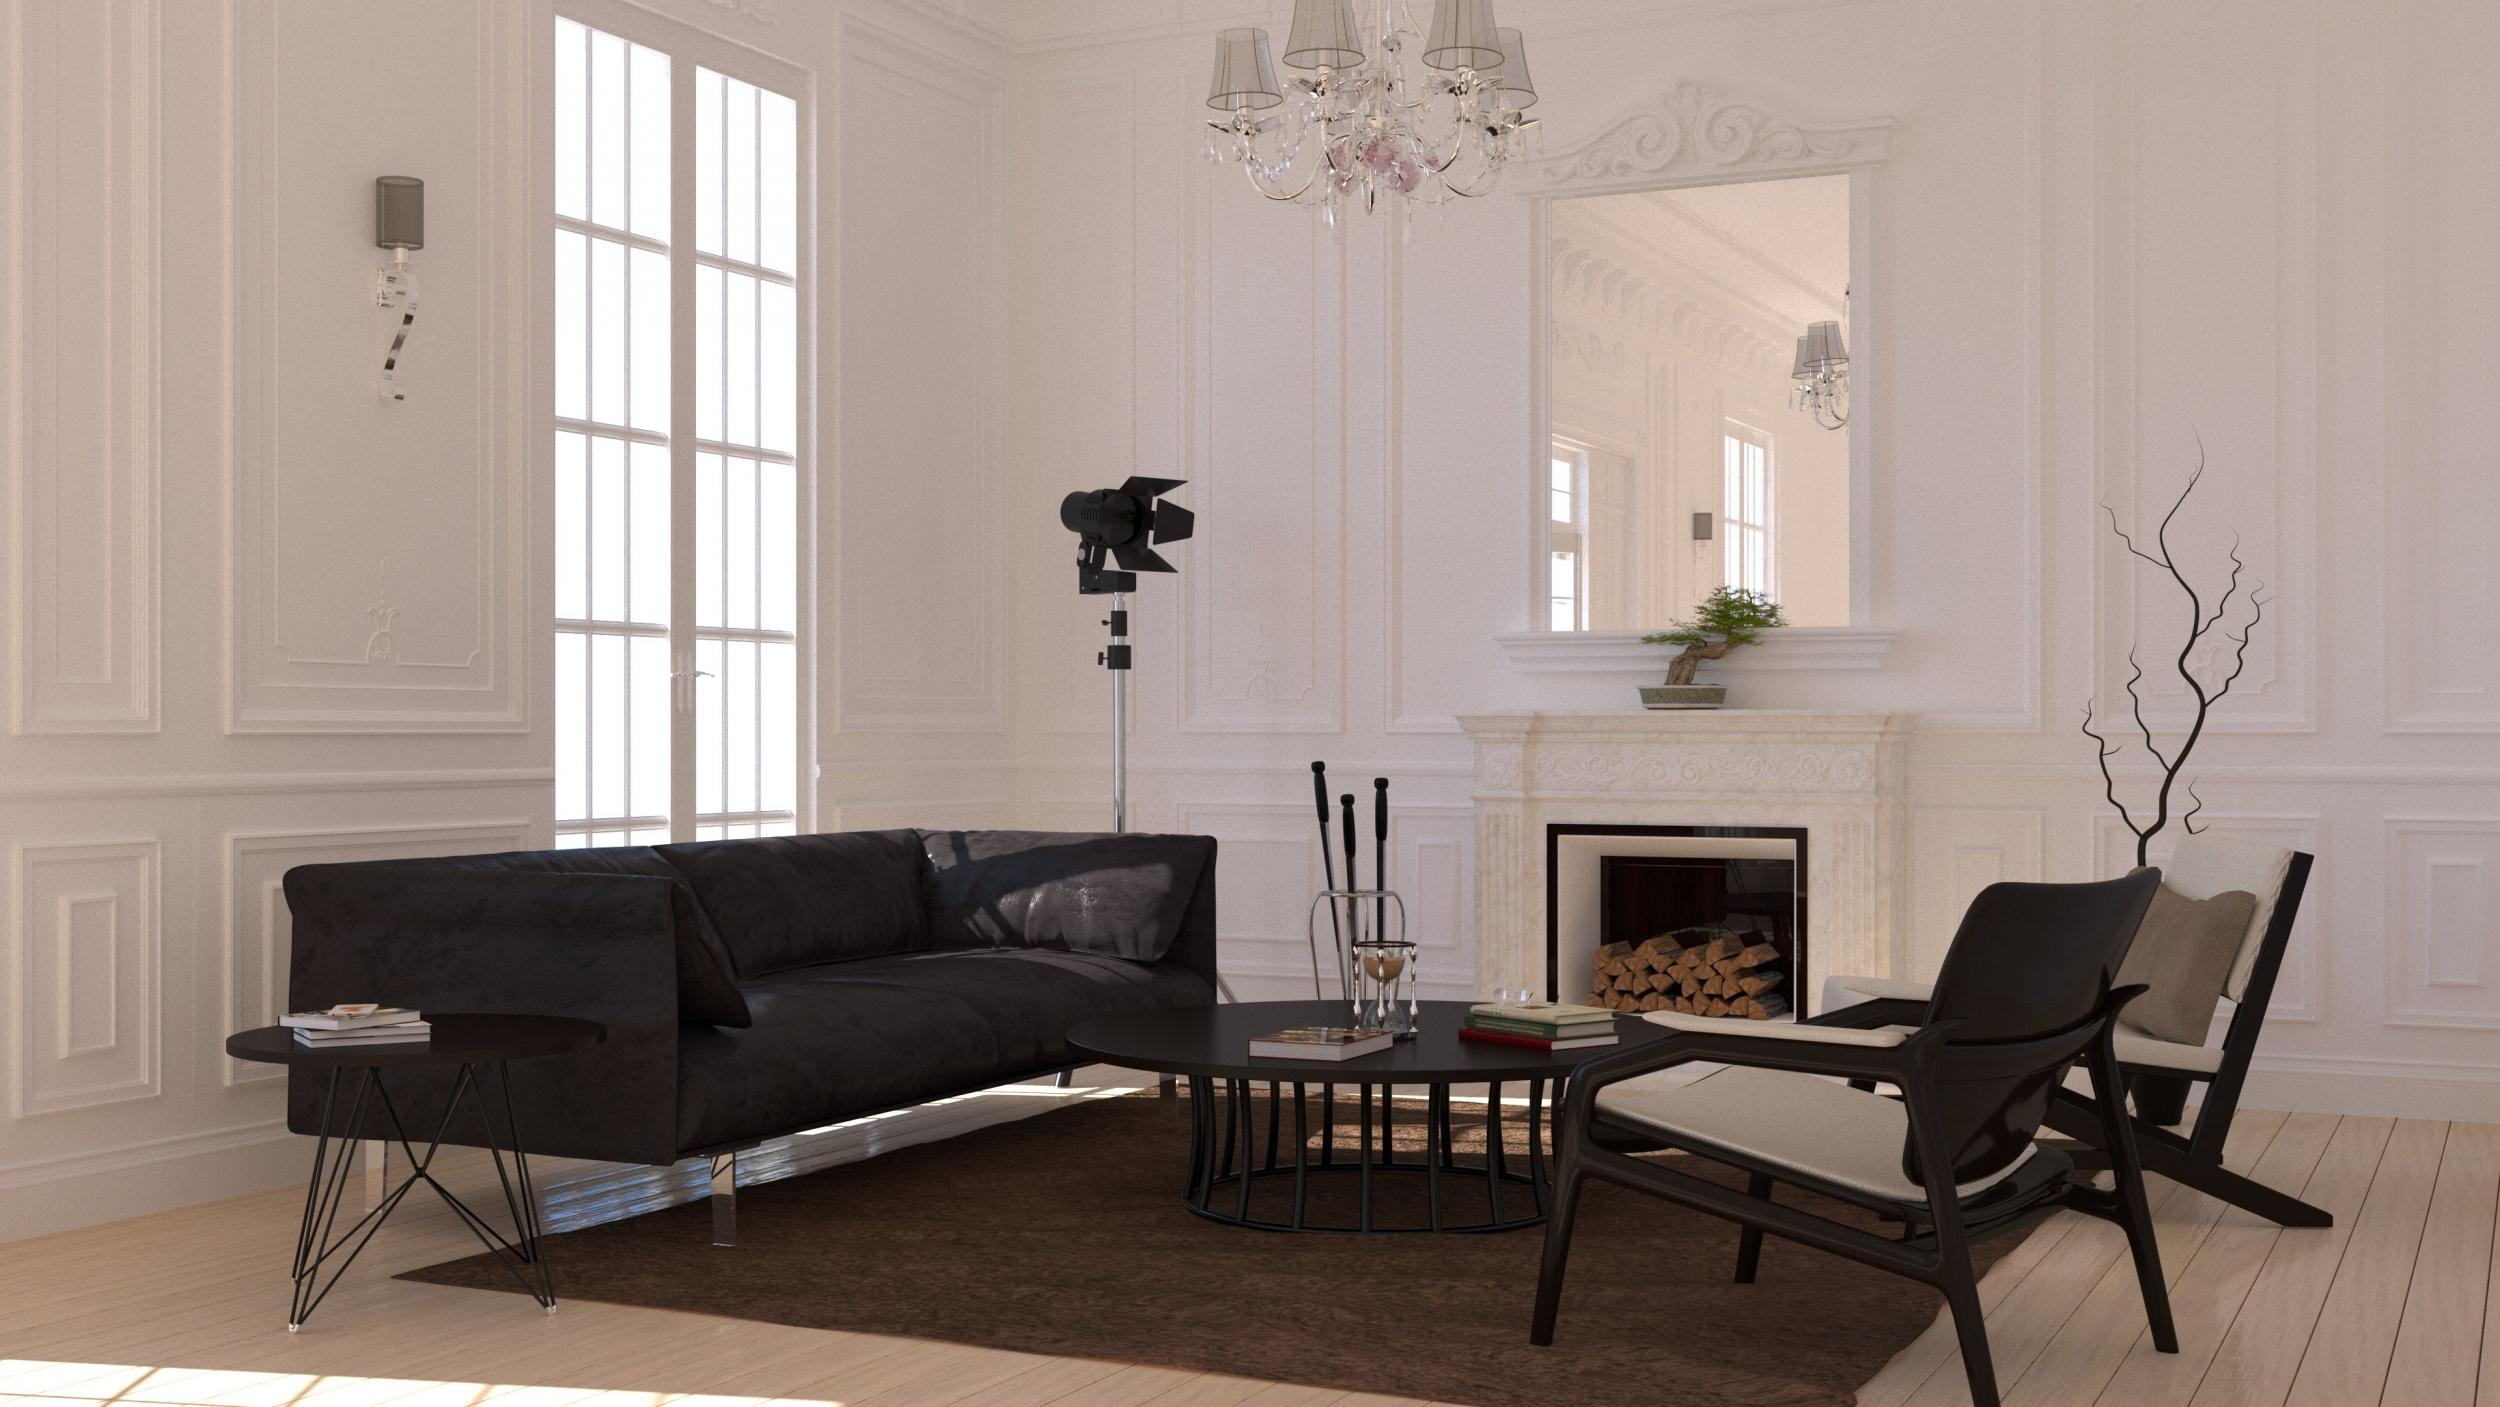 living _room22_by_Duc Nguyen4sm.jpg